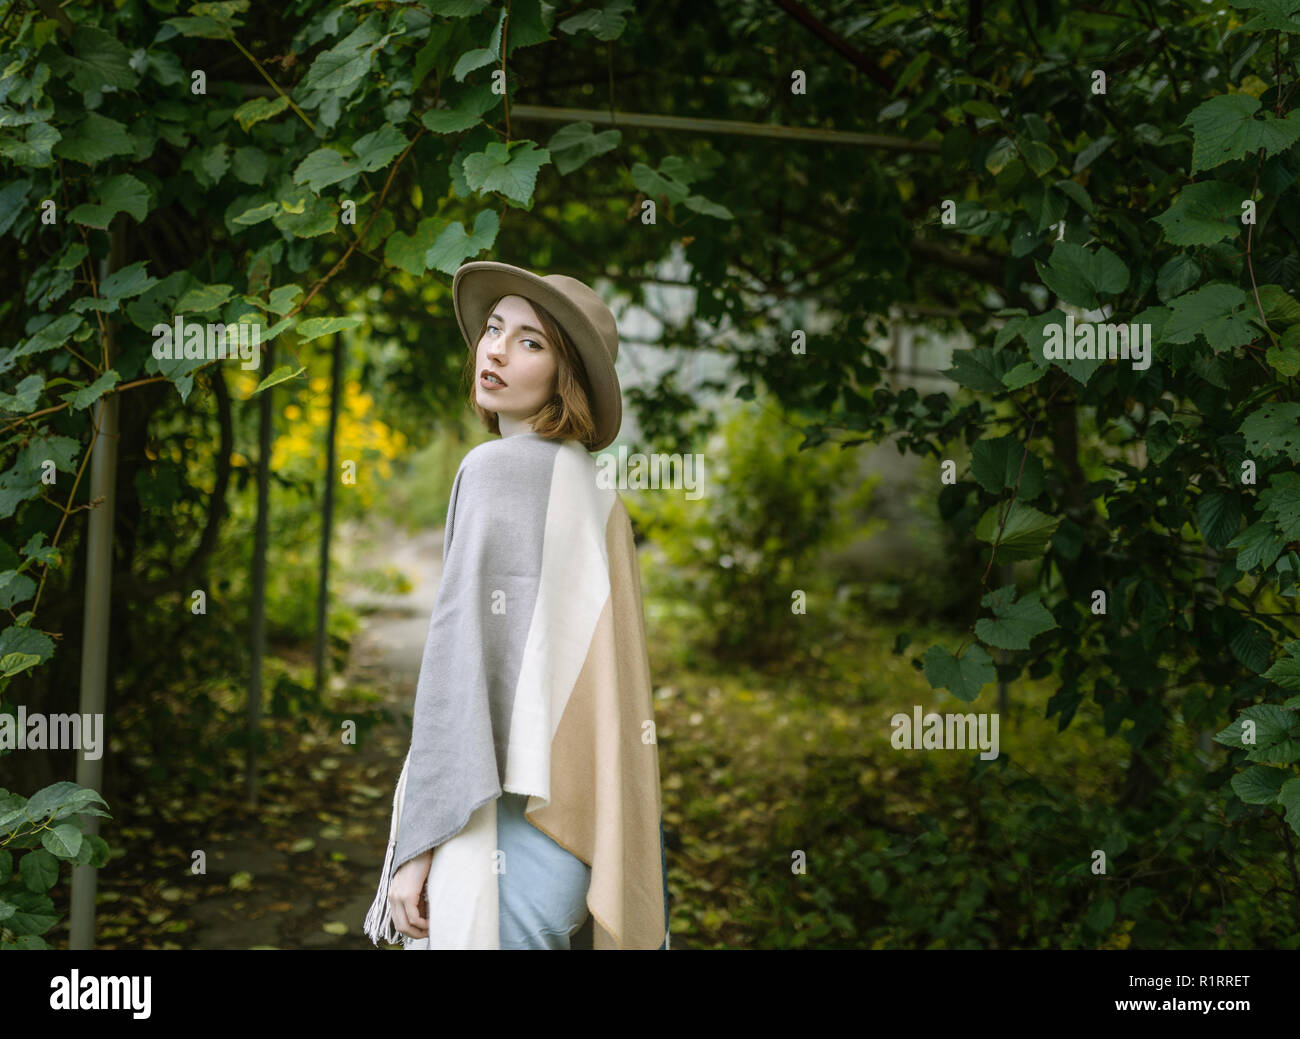 Fashionable young woman wearing in hat and poncho. - Stock Image